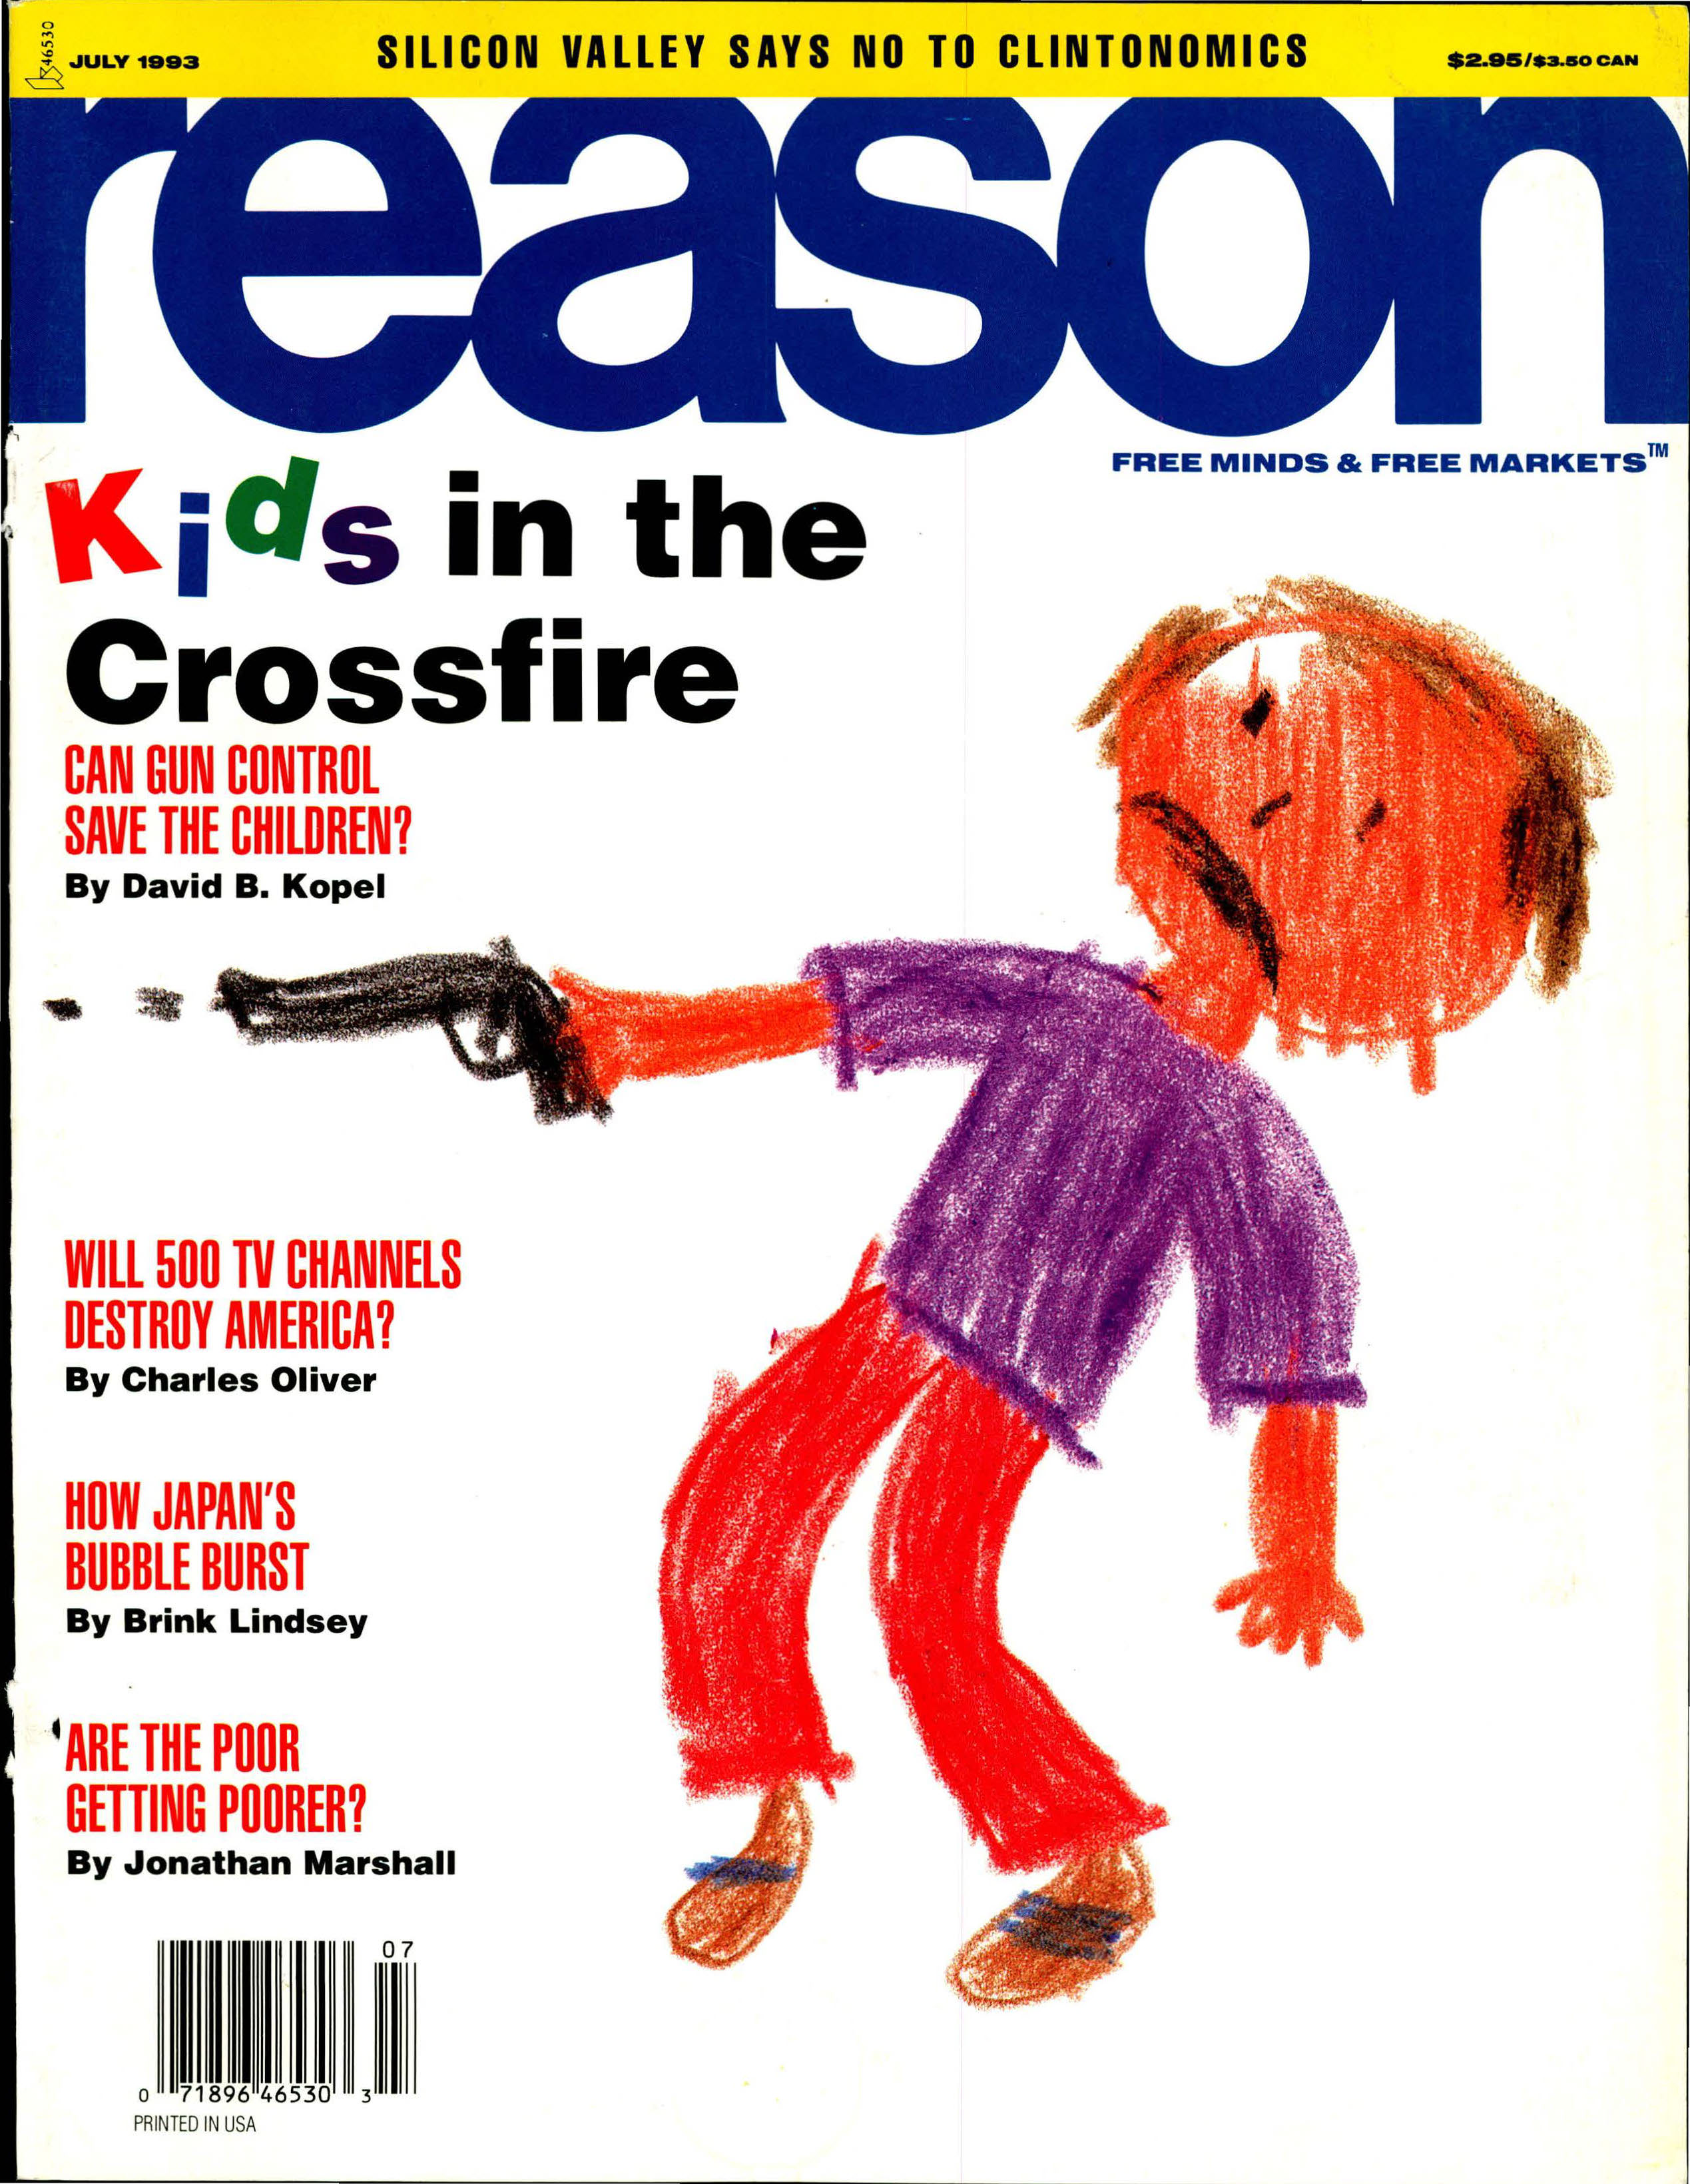 Reason Magazine, July 1993 cover image